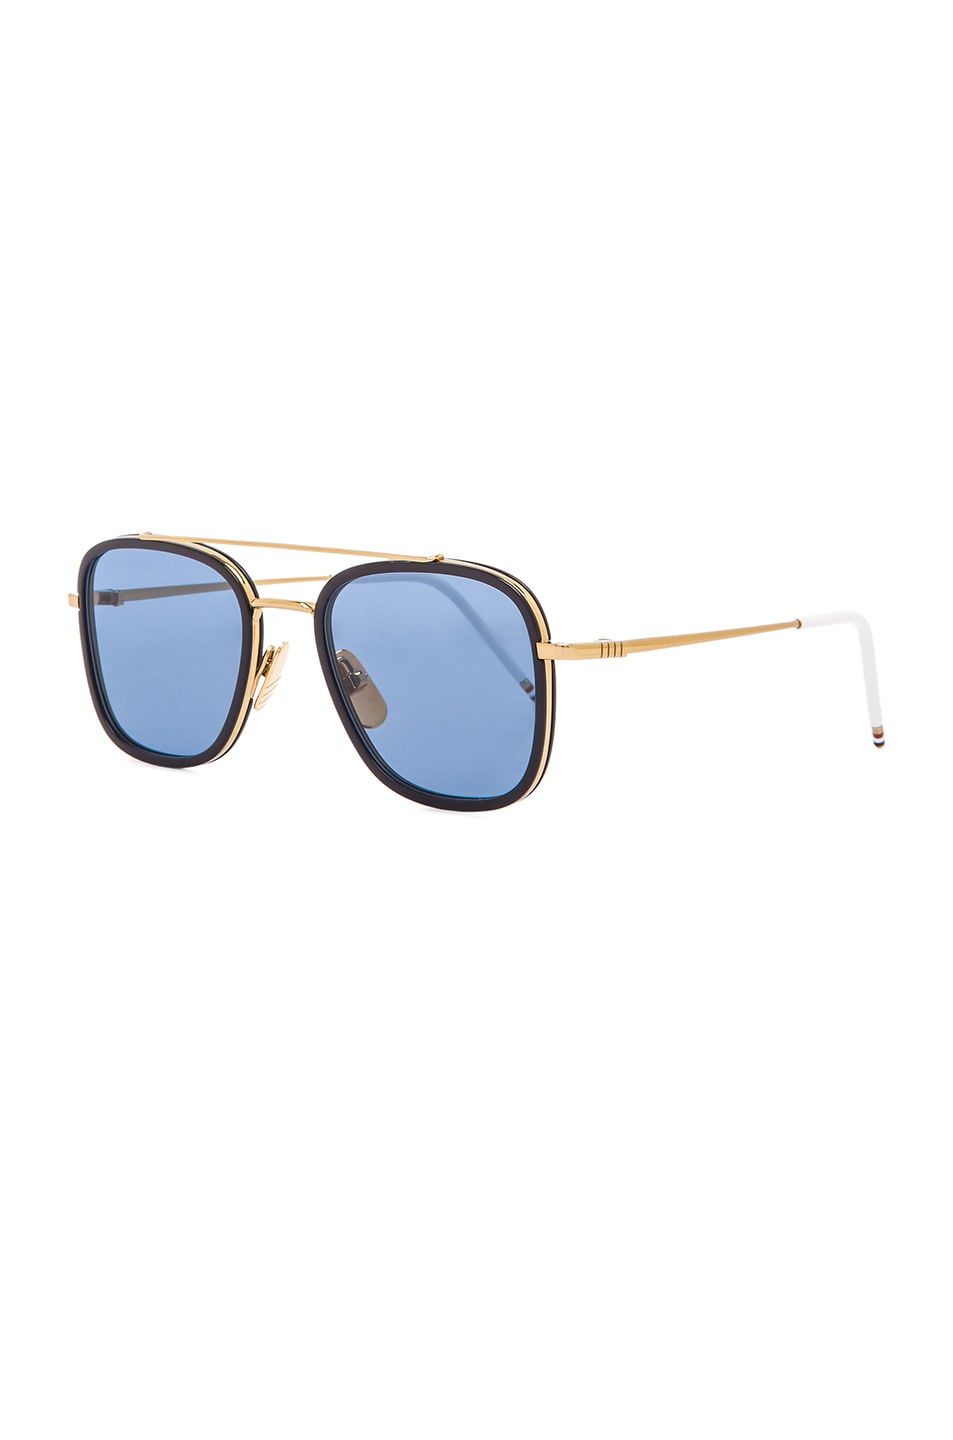 f7502e8dafd Image 2 of Thom Browne Square Frame Sunglasses in 18K Gold   Navy